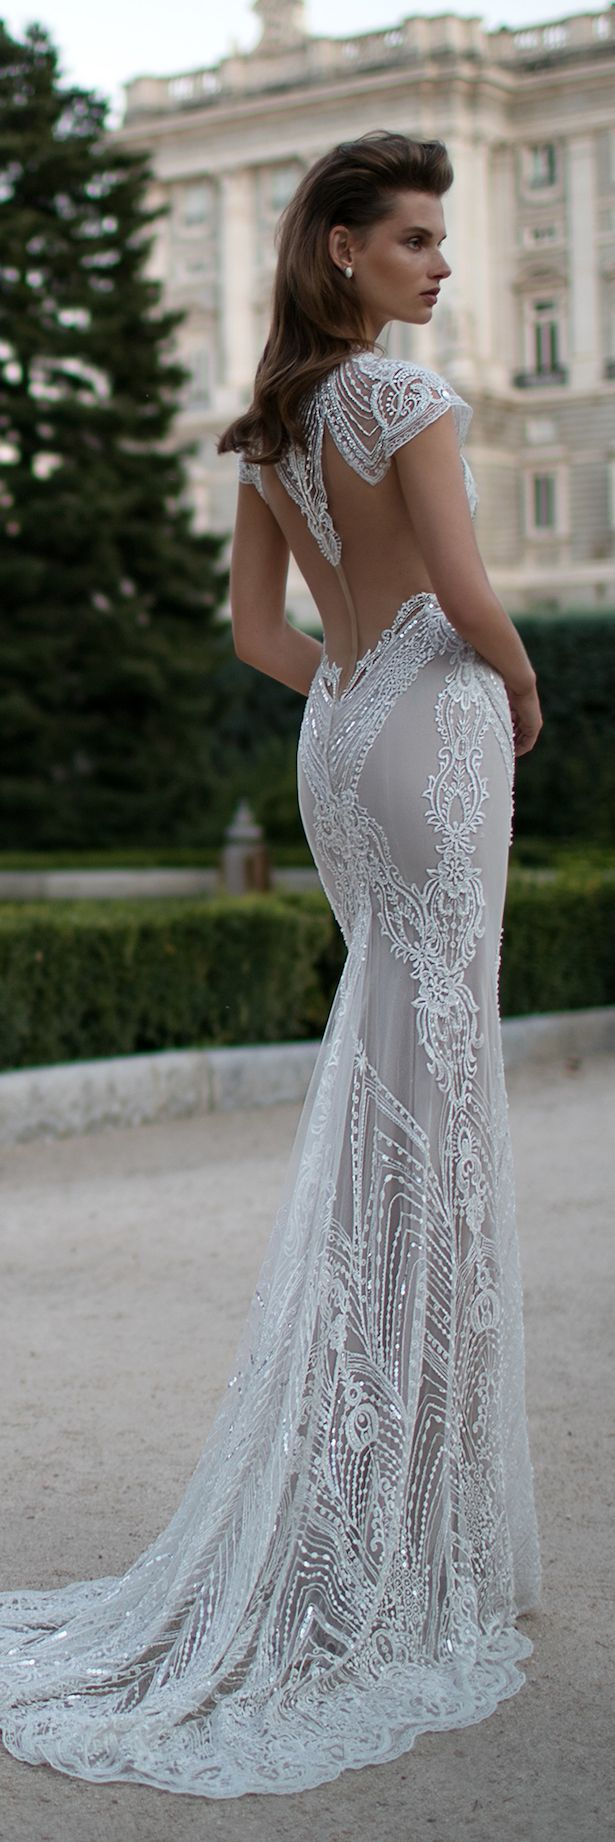 tight fitted wedding dresses photo - 1